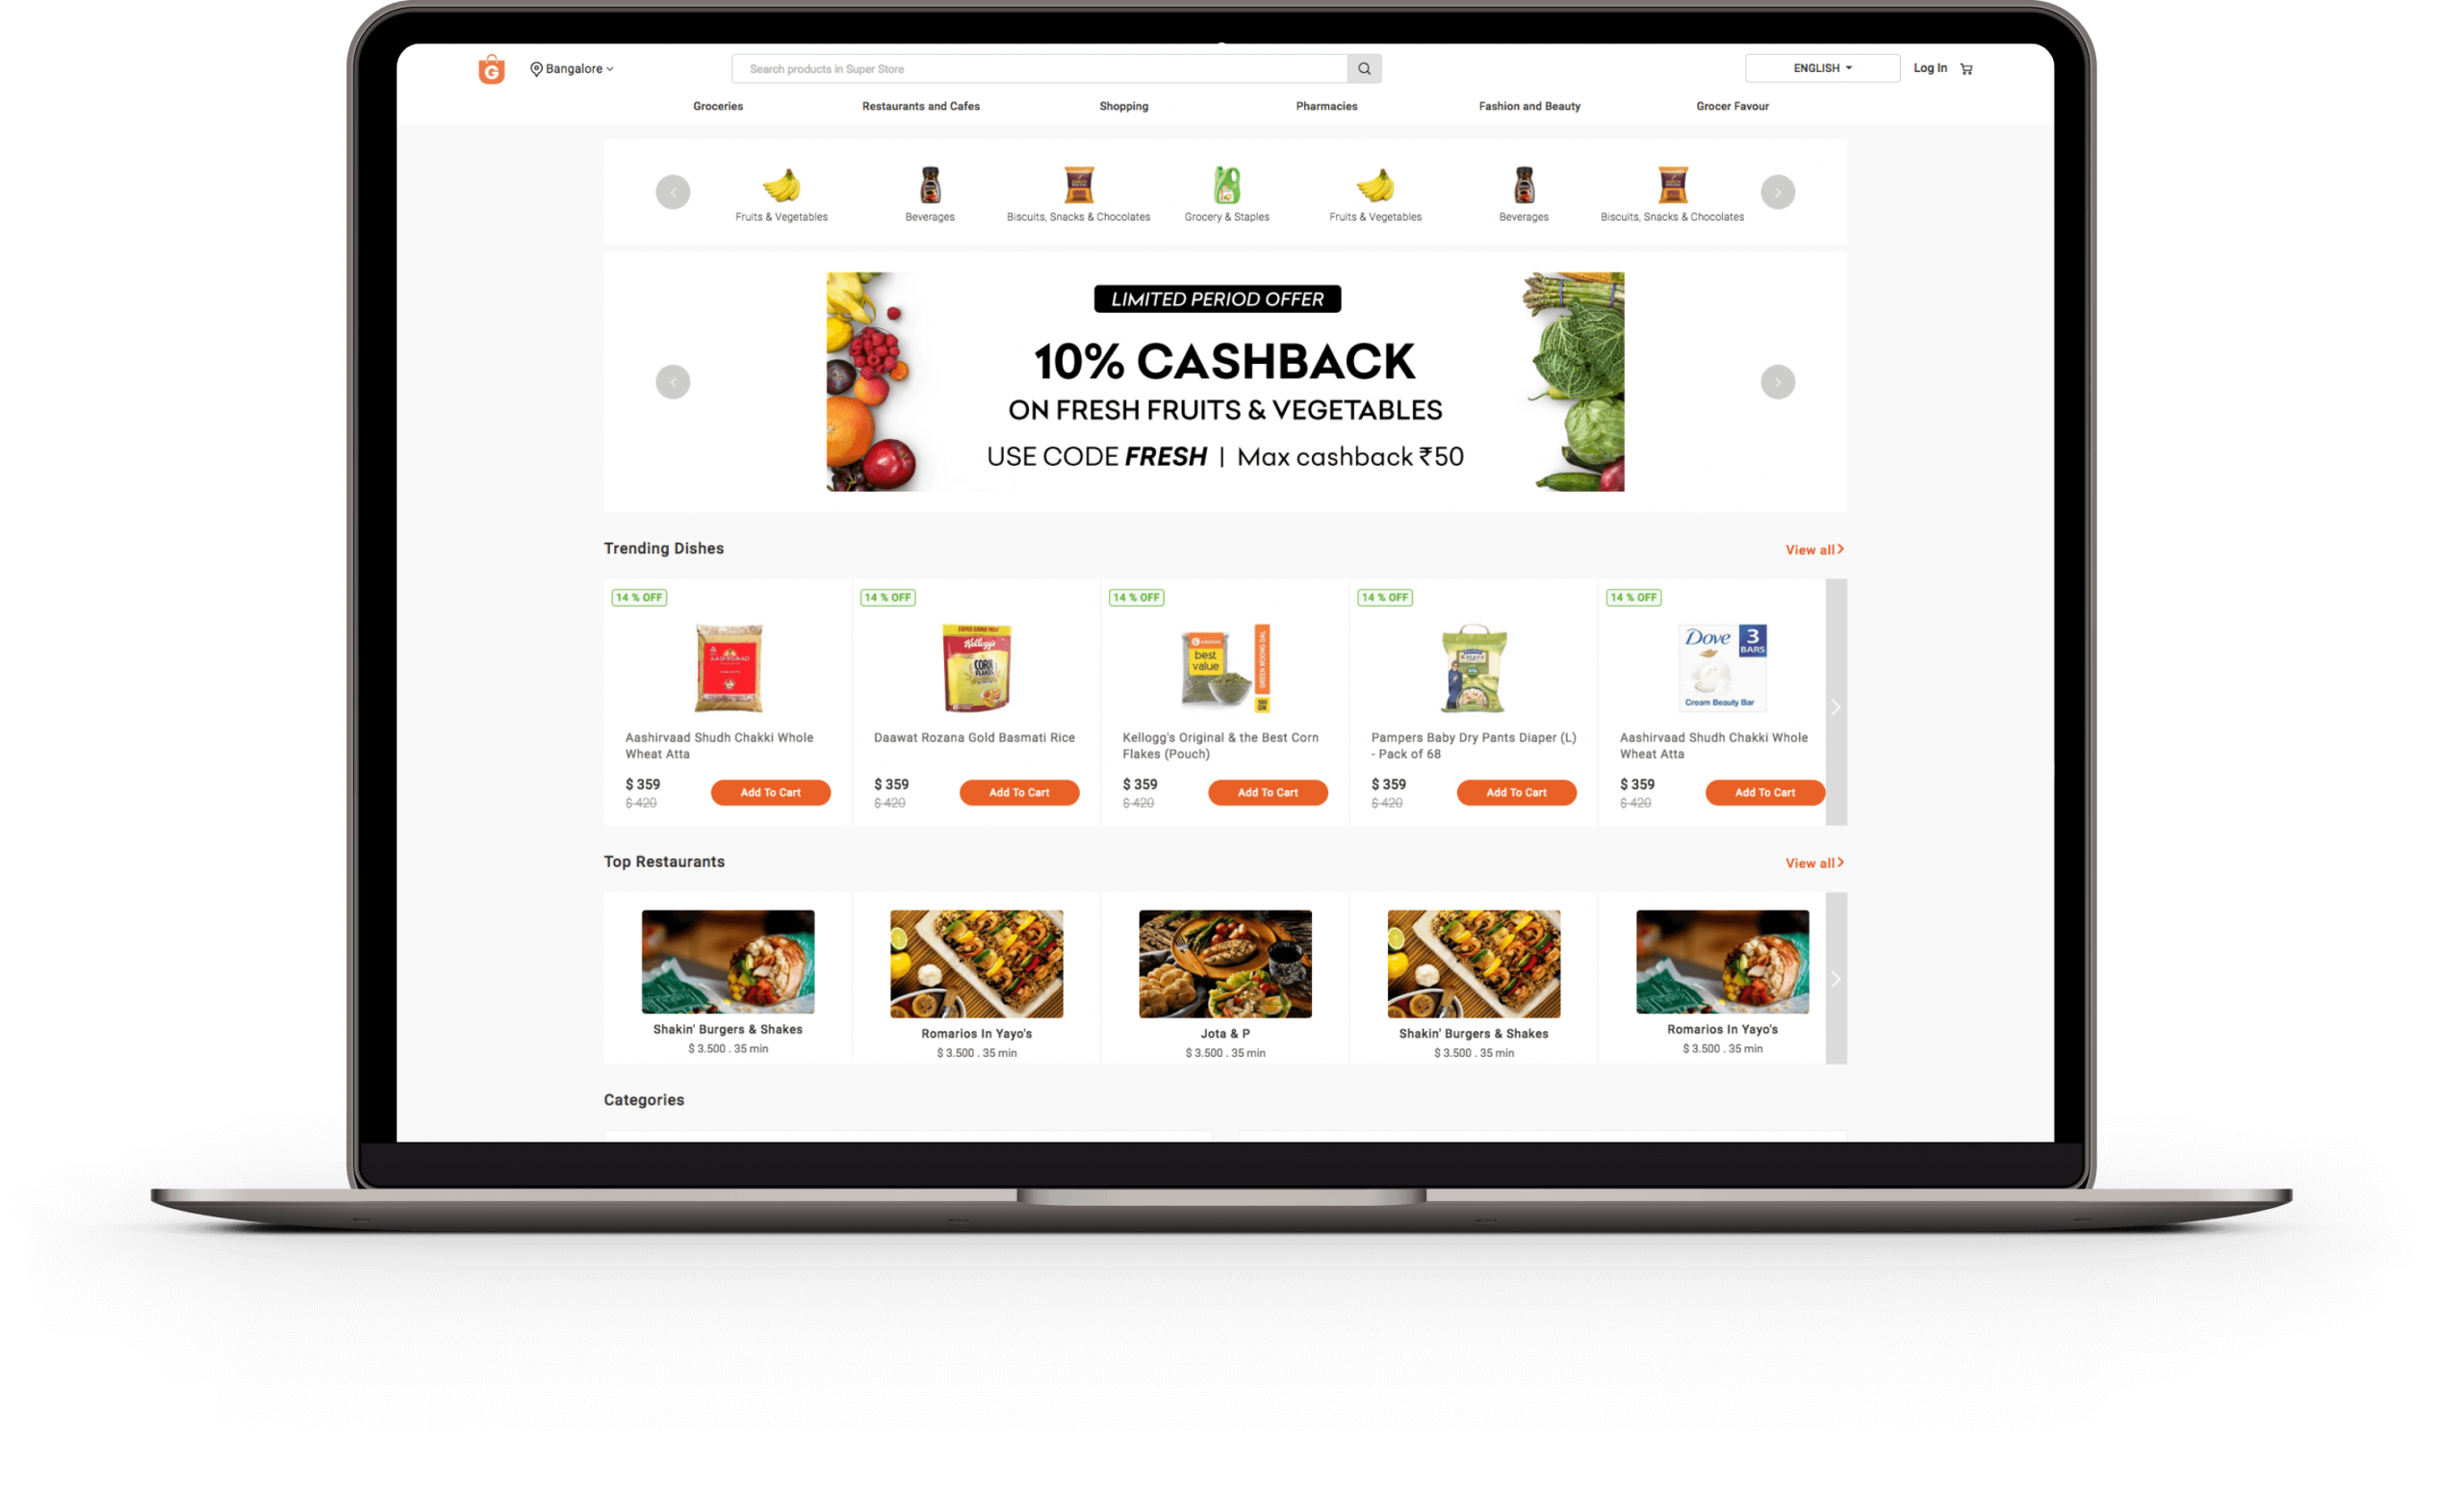 ONLINE GROCERY SHOPPING WEBSITE AND APPLICATION